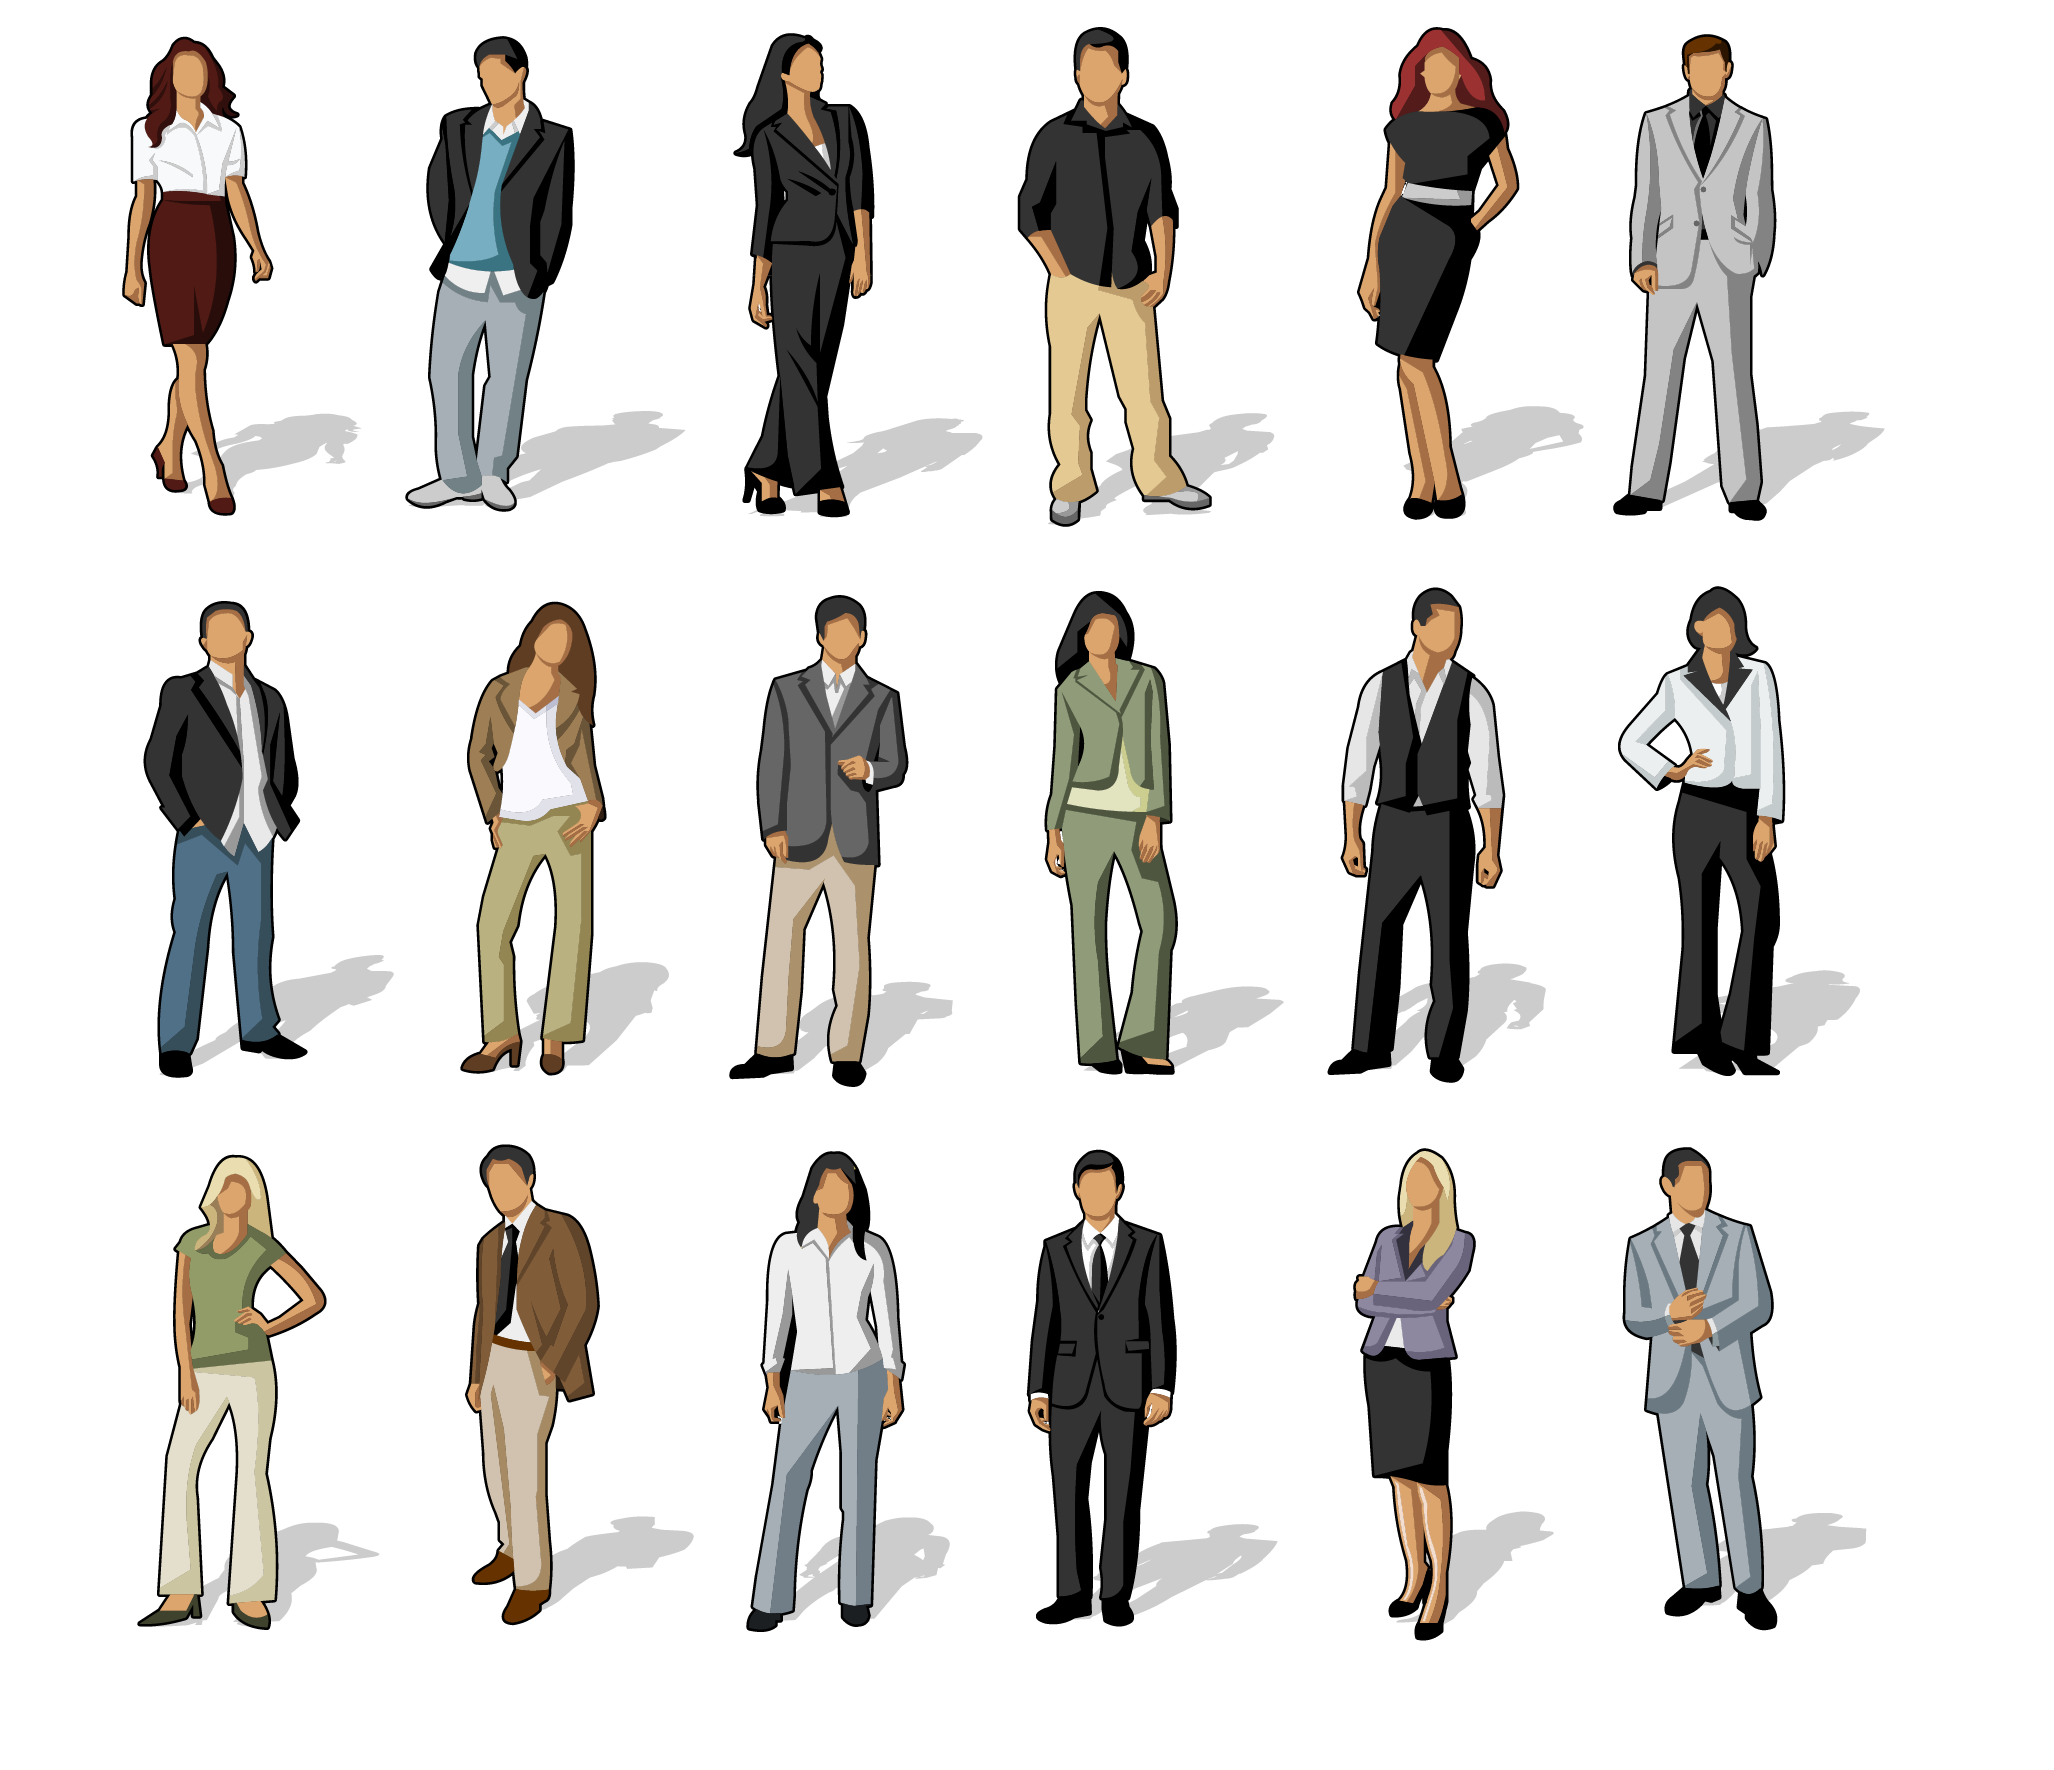 Professional clipart buisness. Business casual clothing clip